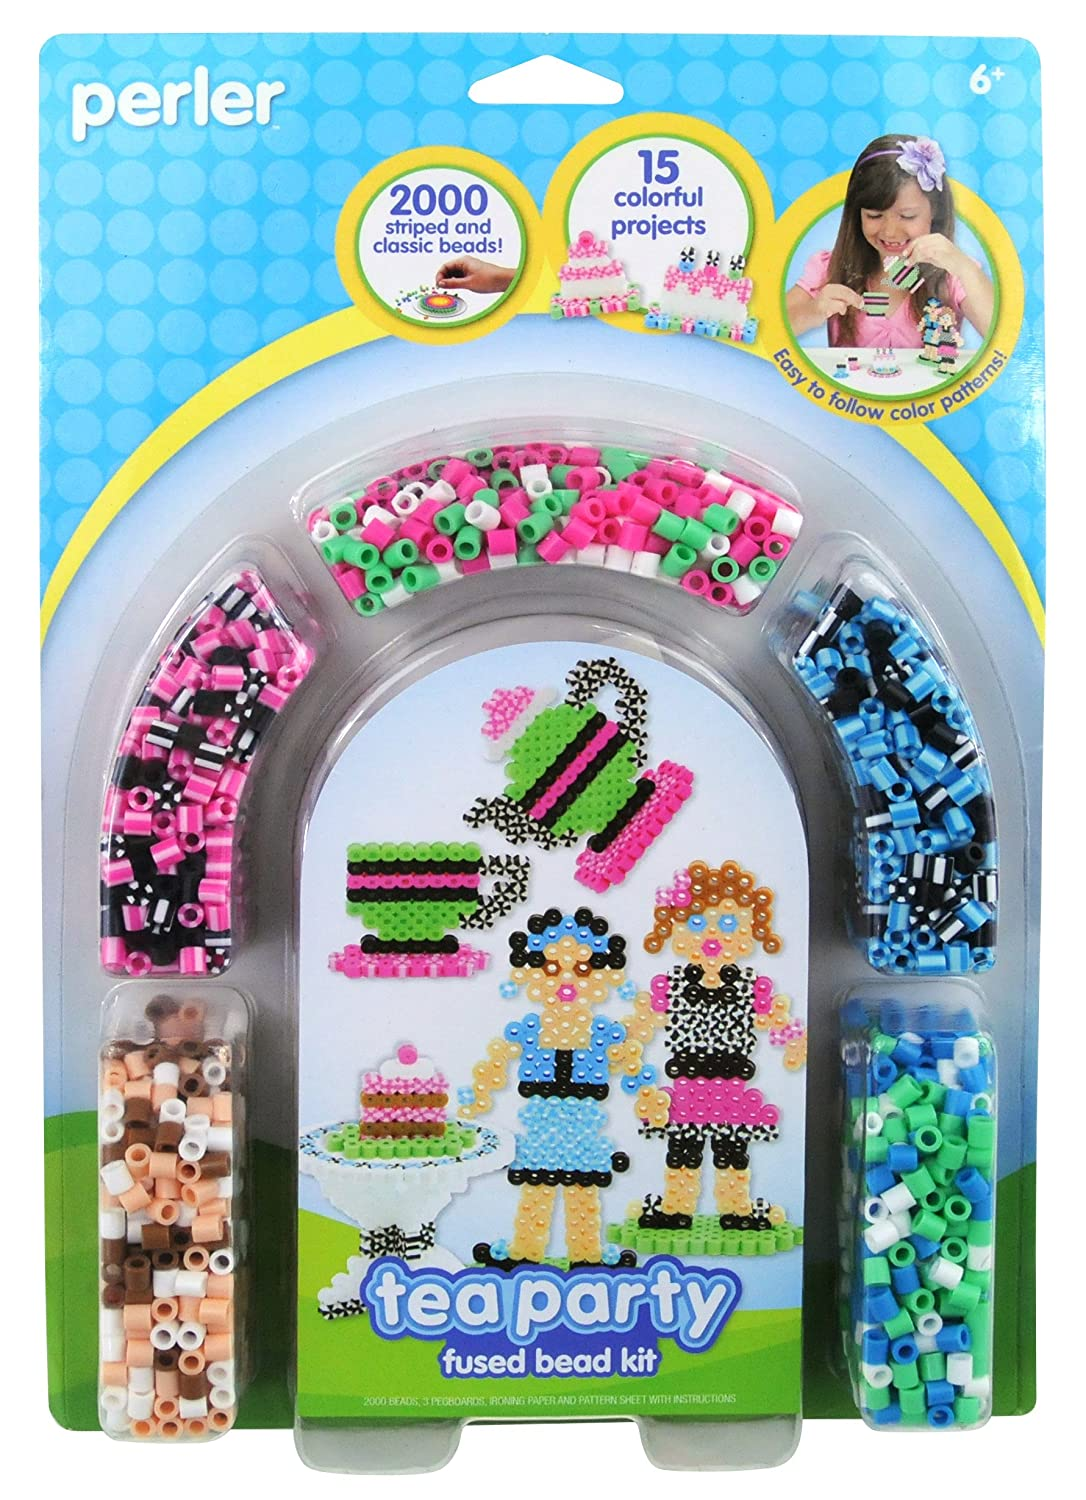 5e48b5a52 Perler Beads Fused Bead Kit, Neon Jewelry: Amazon.ca: Home & Kitchen